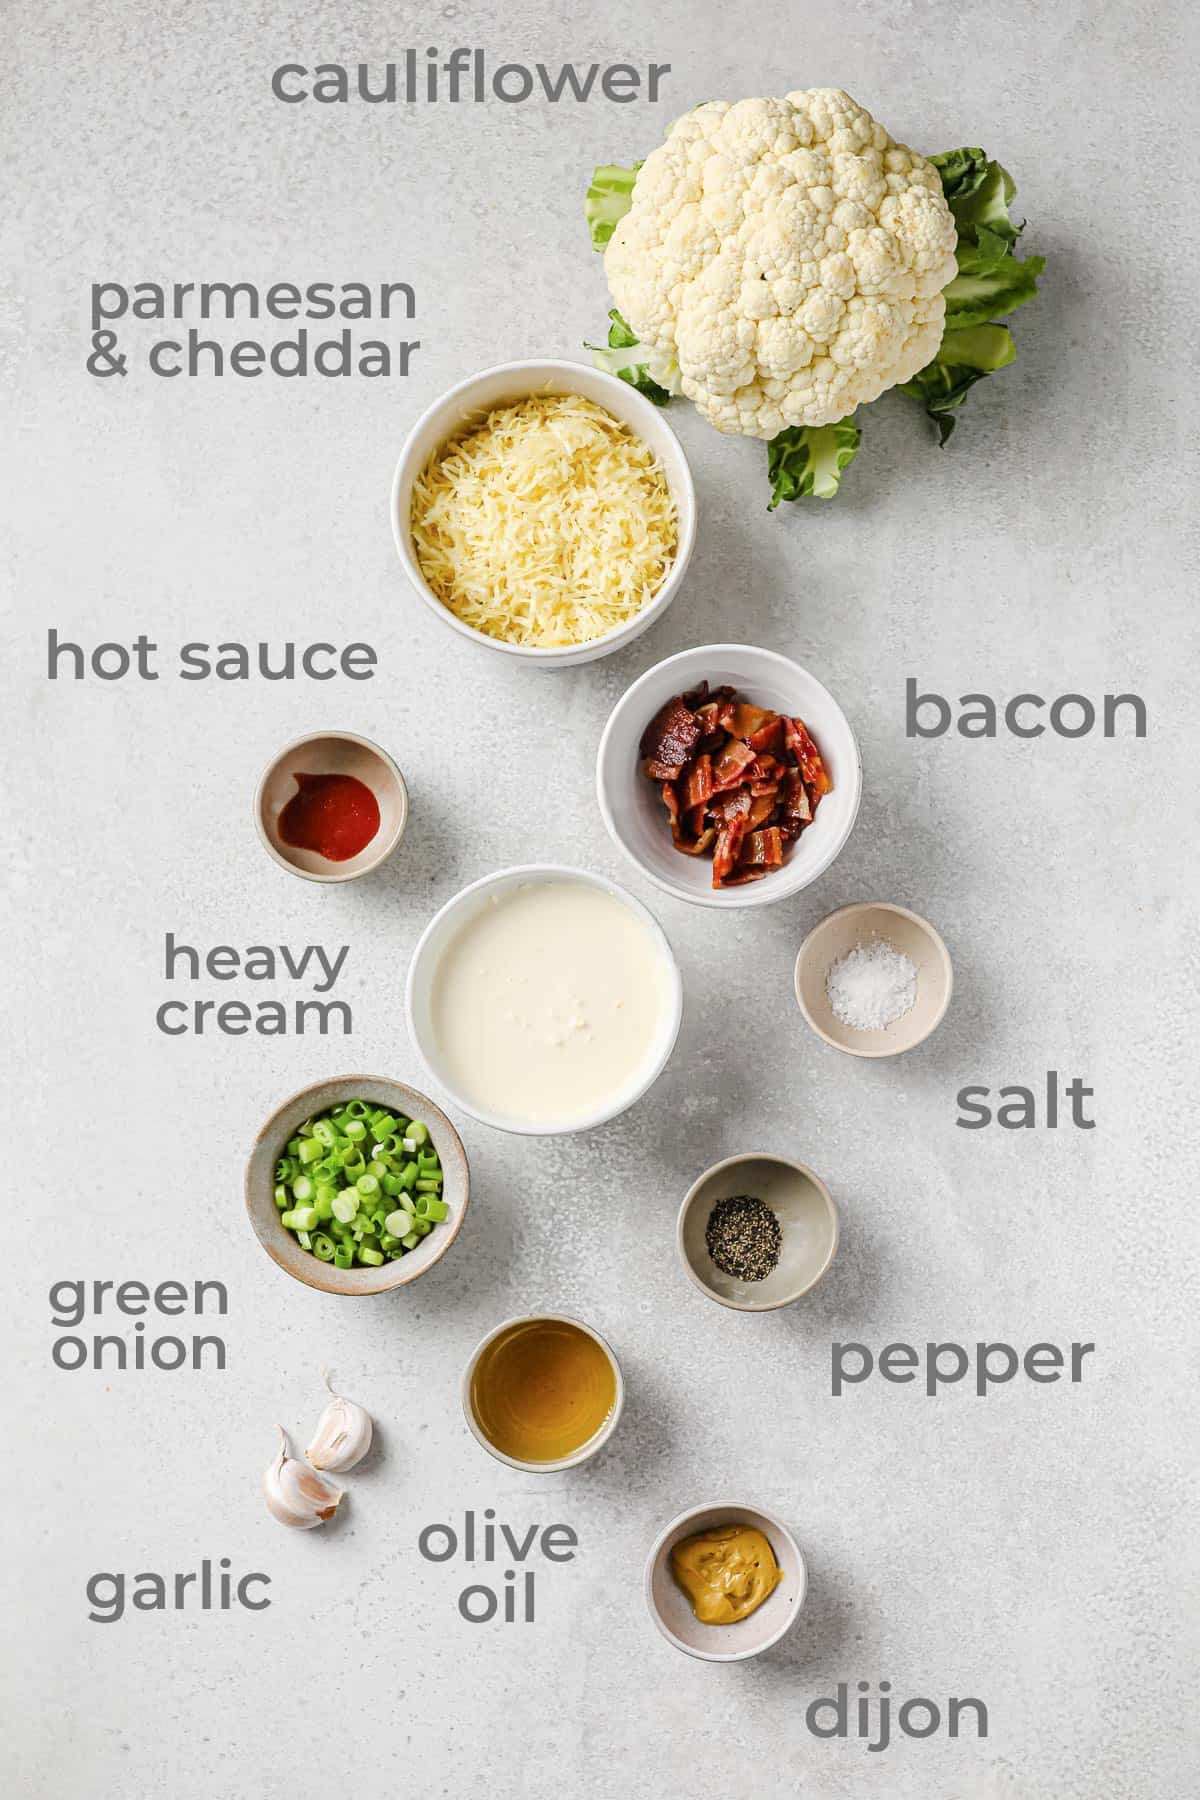 ingredients laid out - bacon, cheese, garlic, mustard, cauilflower, green onions, bacon, cheese, salt, and pepper